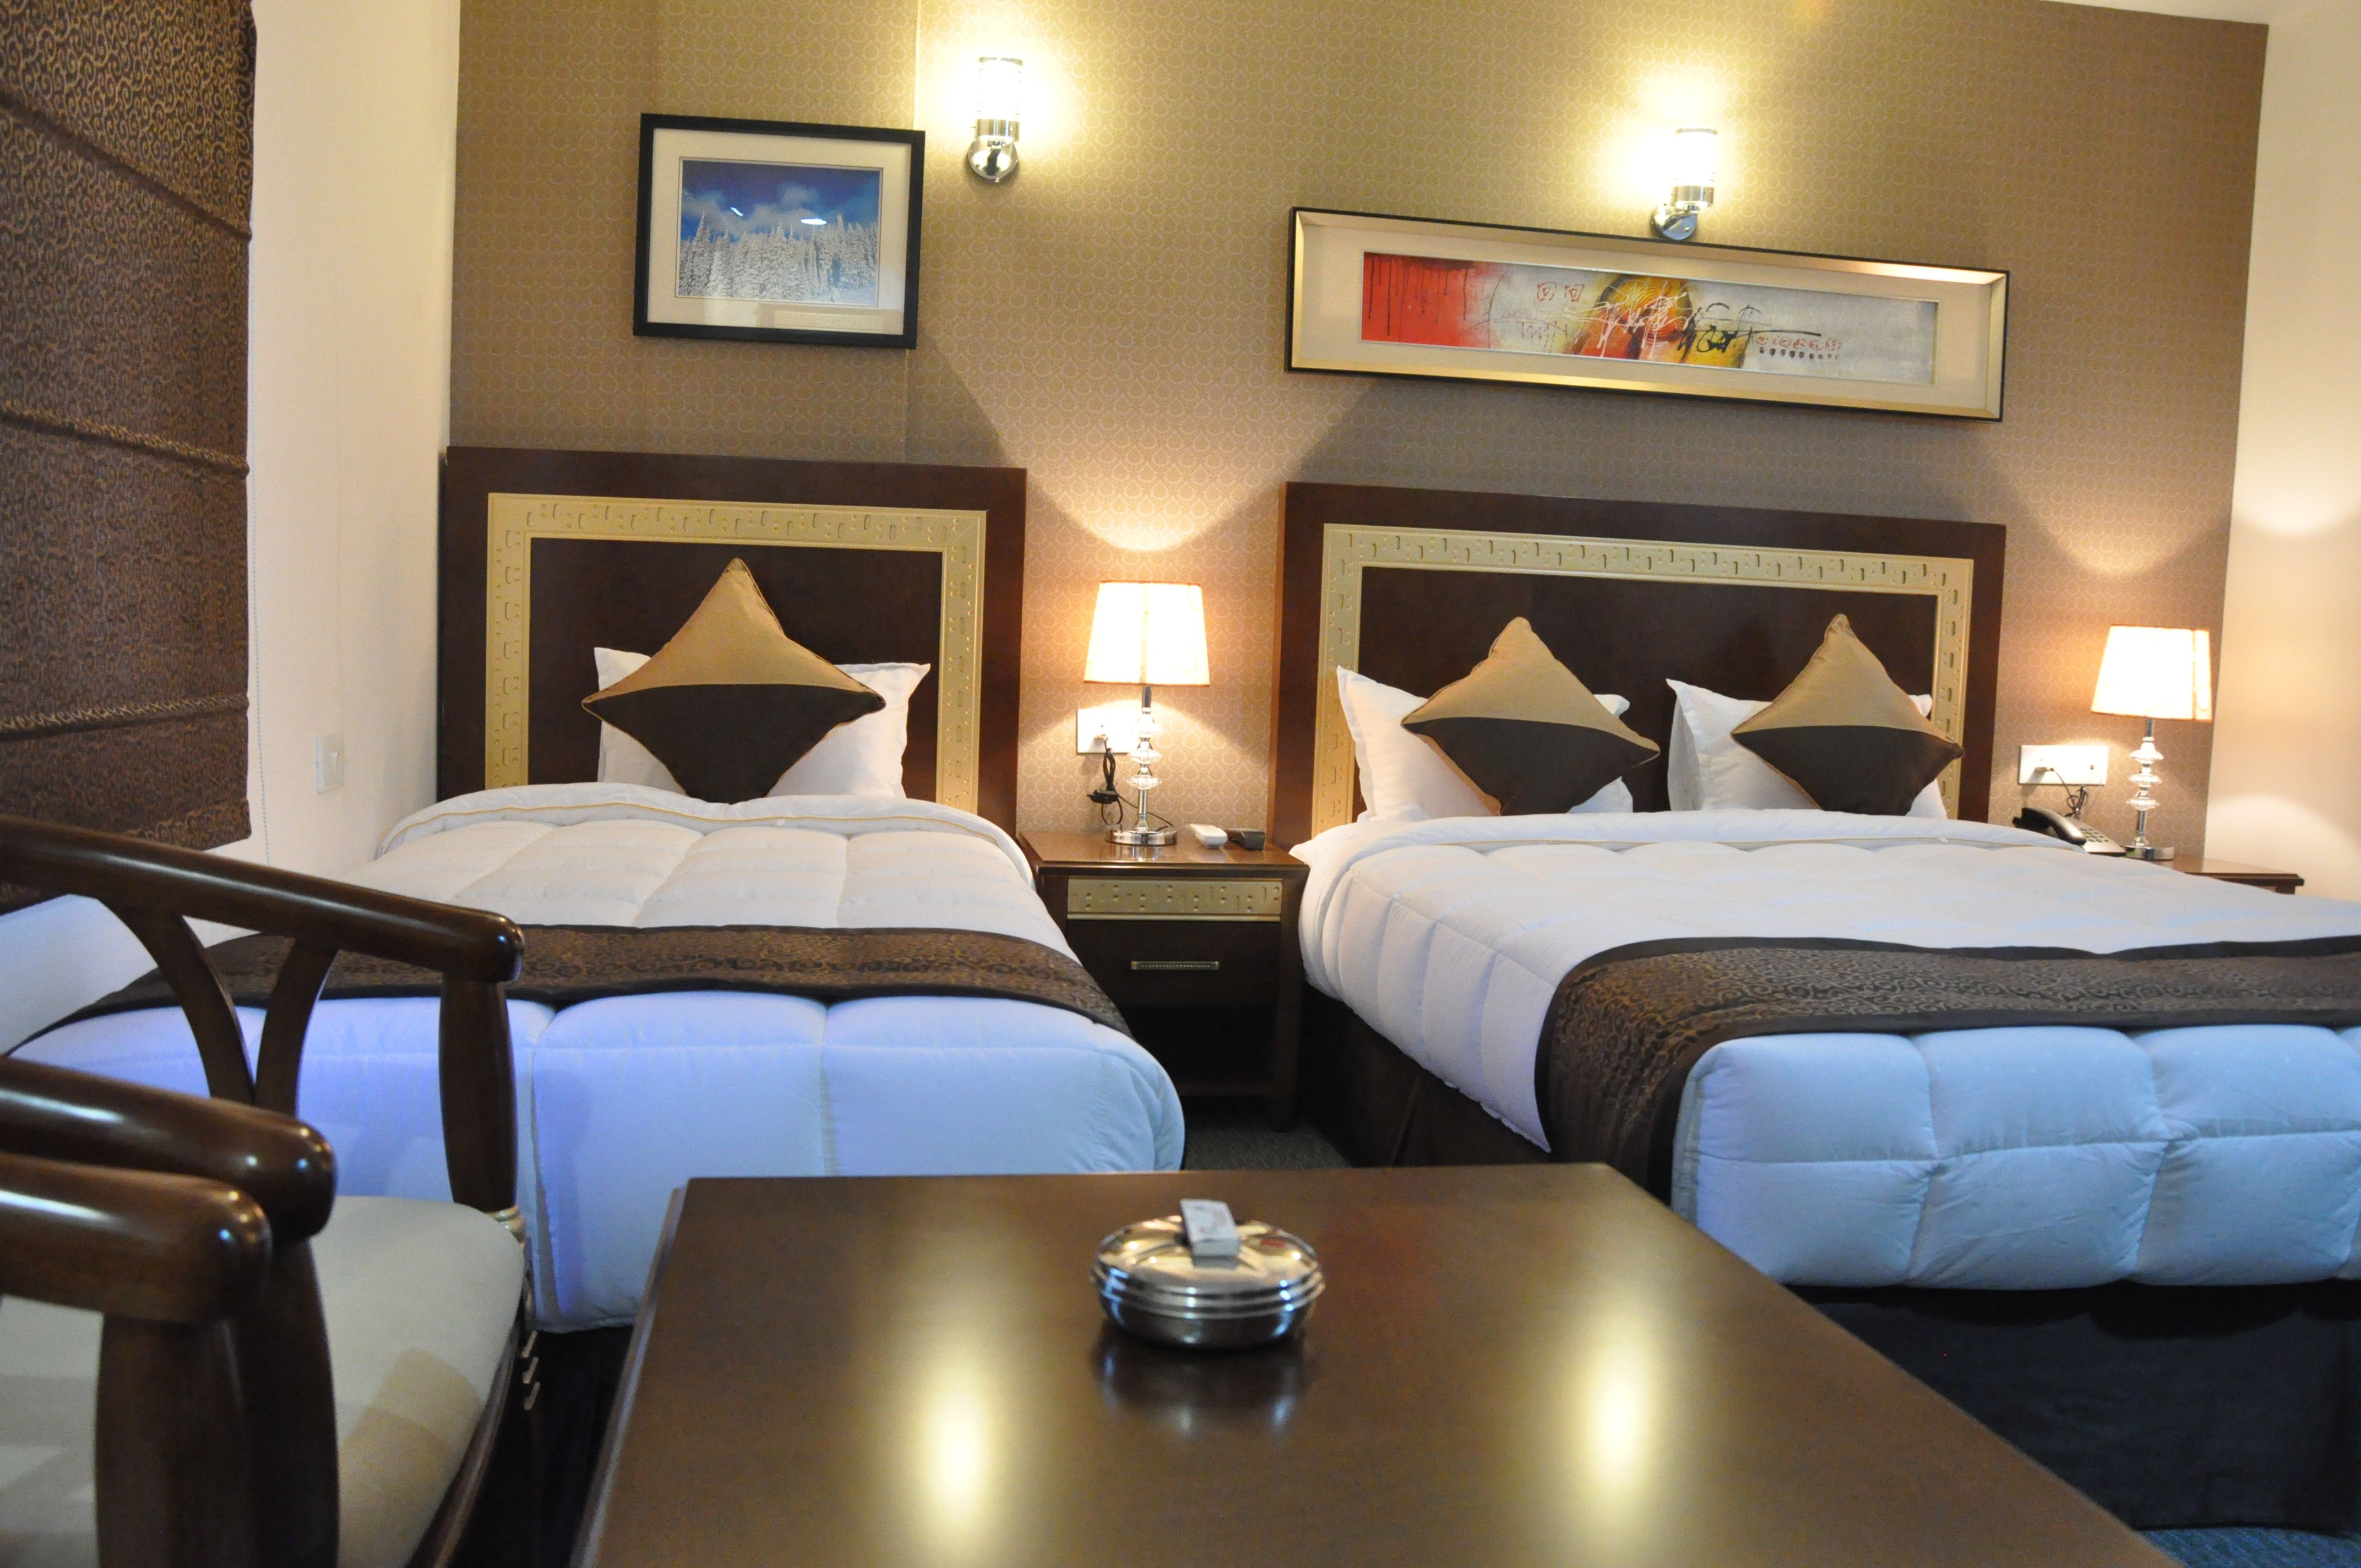 Hotel Sagar Paradise Ajmer Rajasthan India Is The Best 3 Star Hotel In Ajmer City Book Now And Get Discount In Ajmer Hot Uttarakhand Hotel Rajasthan India